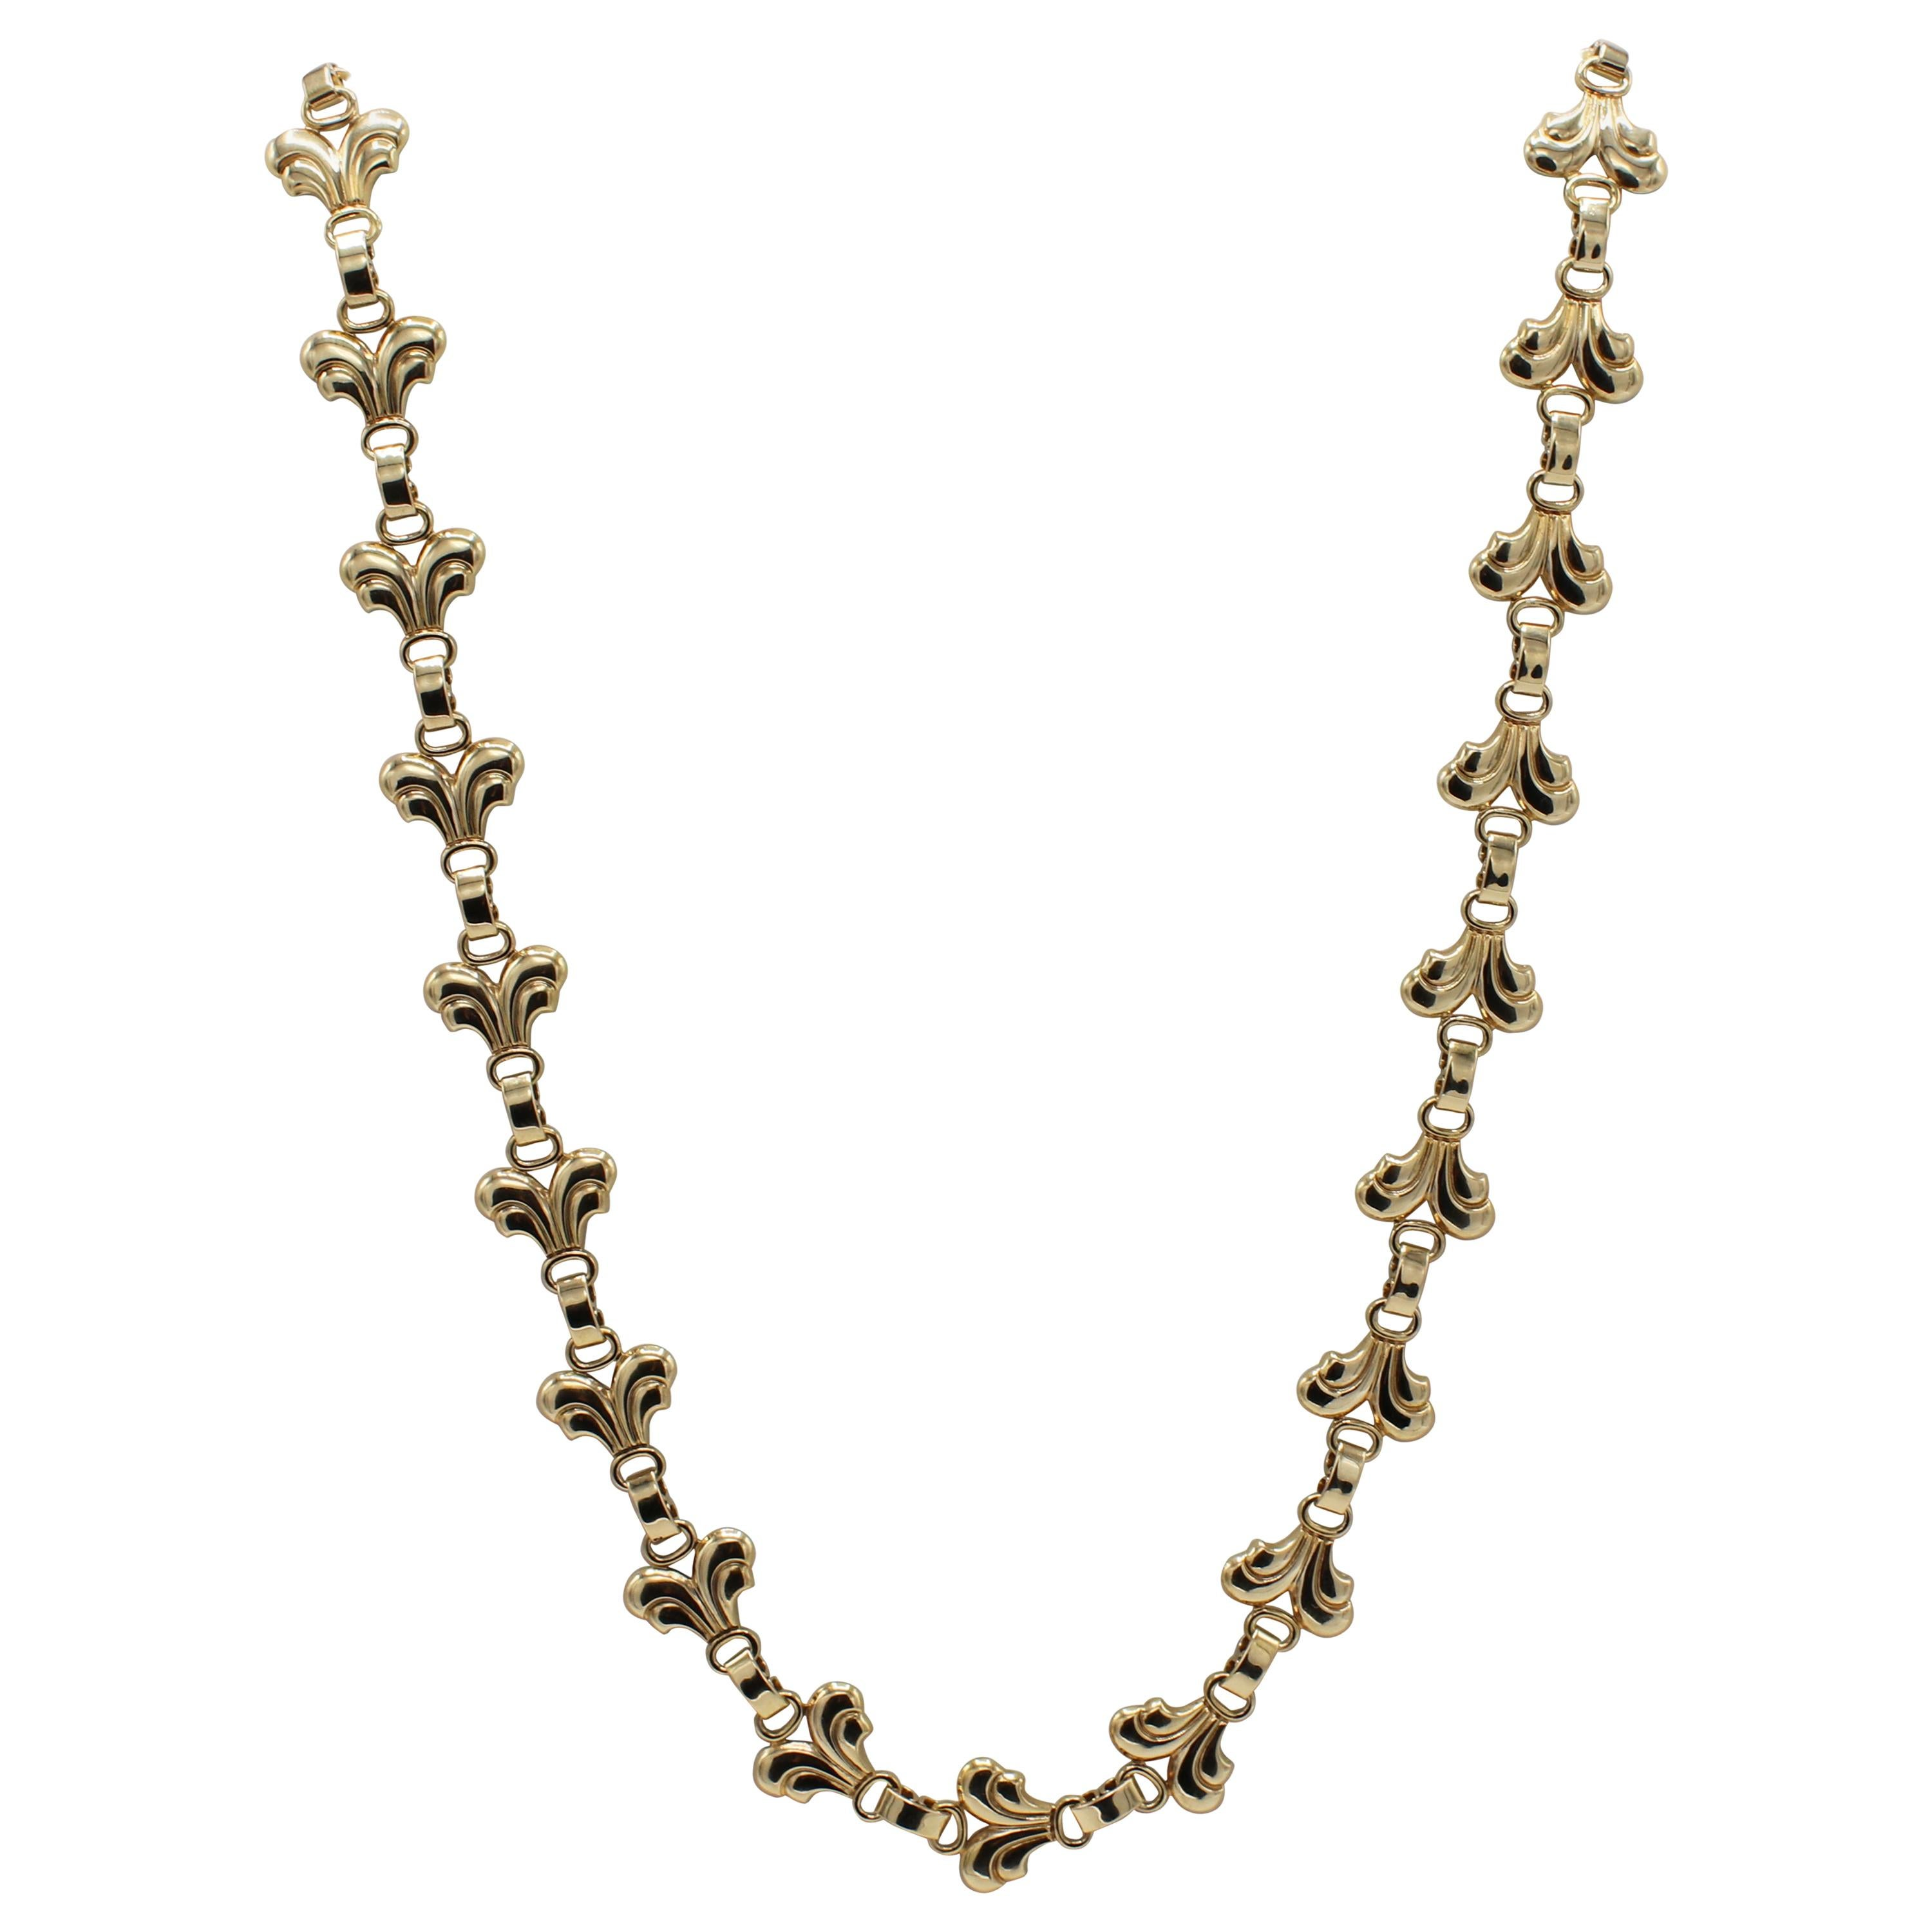 Tiffany & Co. Vintage 14 Karat Yellow Gold Necklace